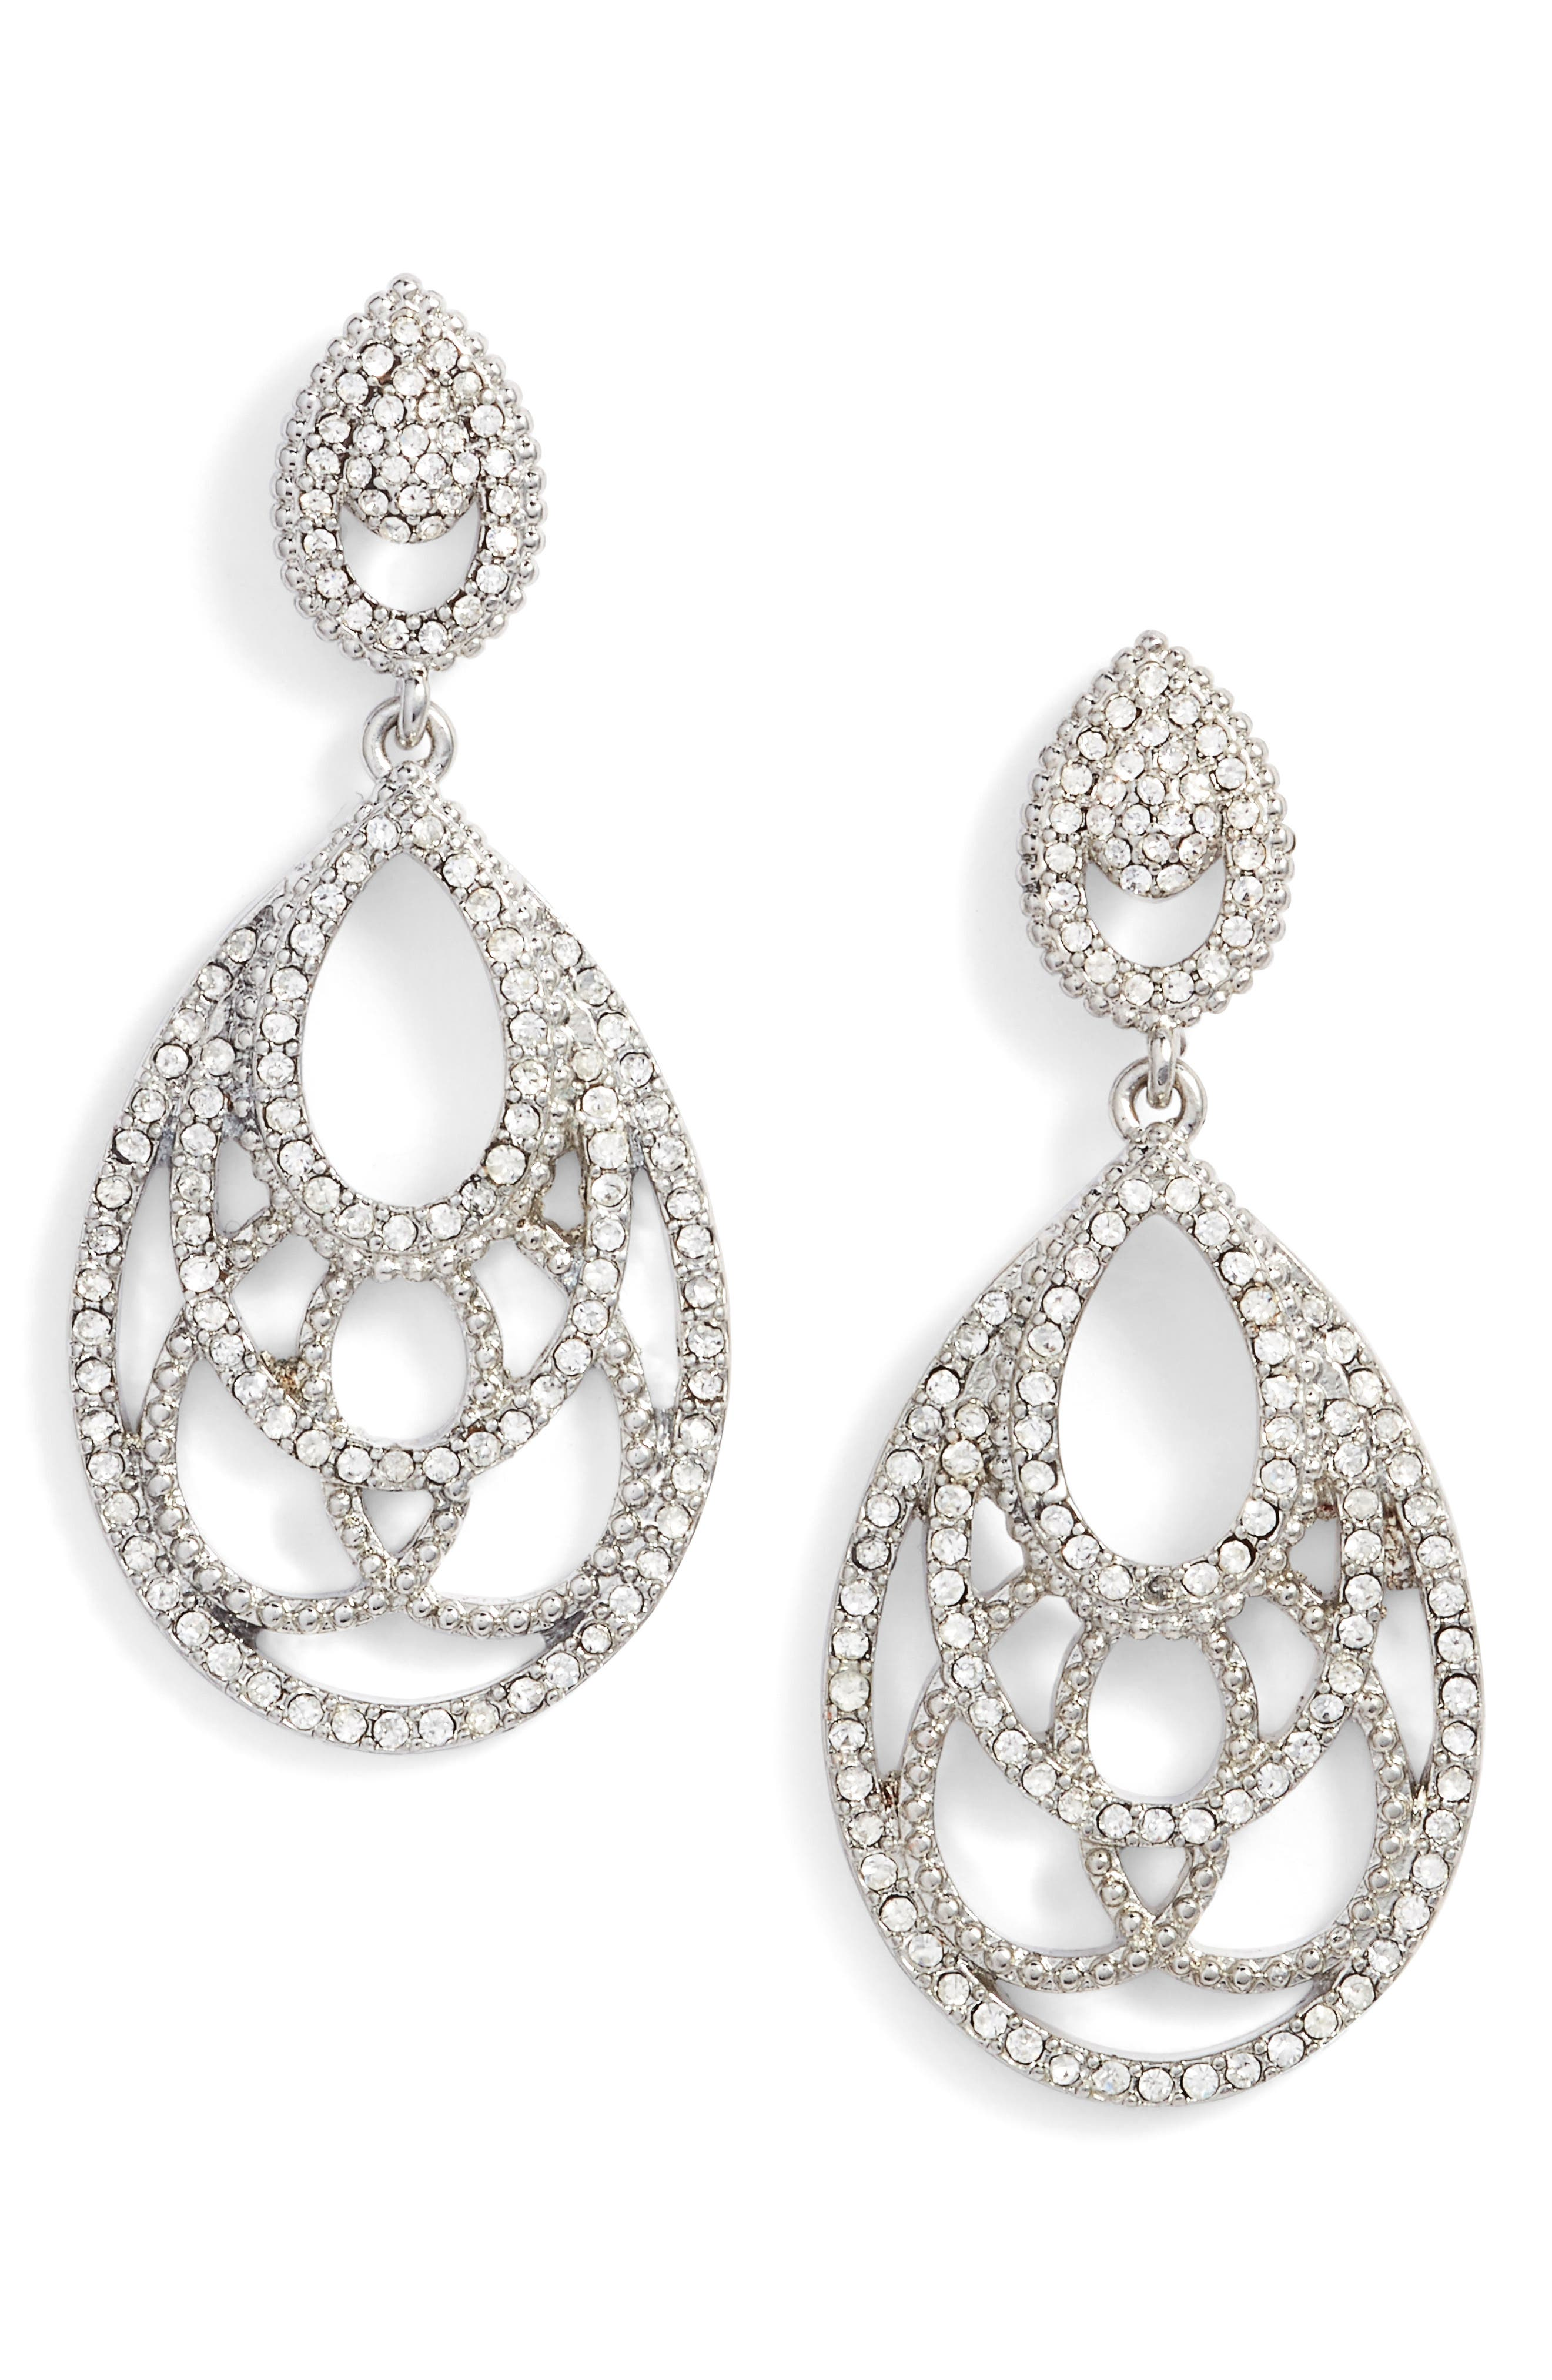 Openwork Crystal Drop Earrings,                             Main thumbnail 1, color,                             Crystal/ Silver